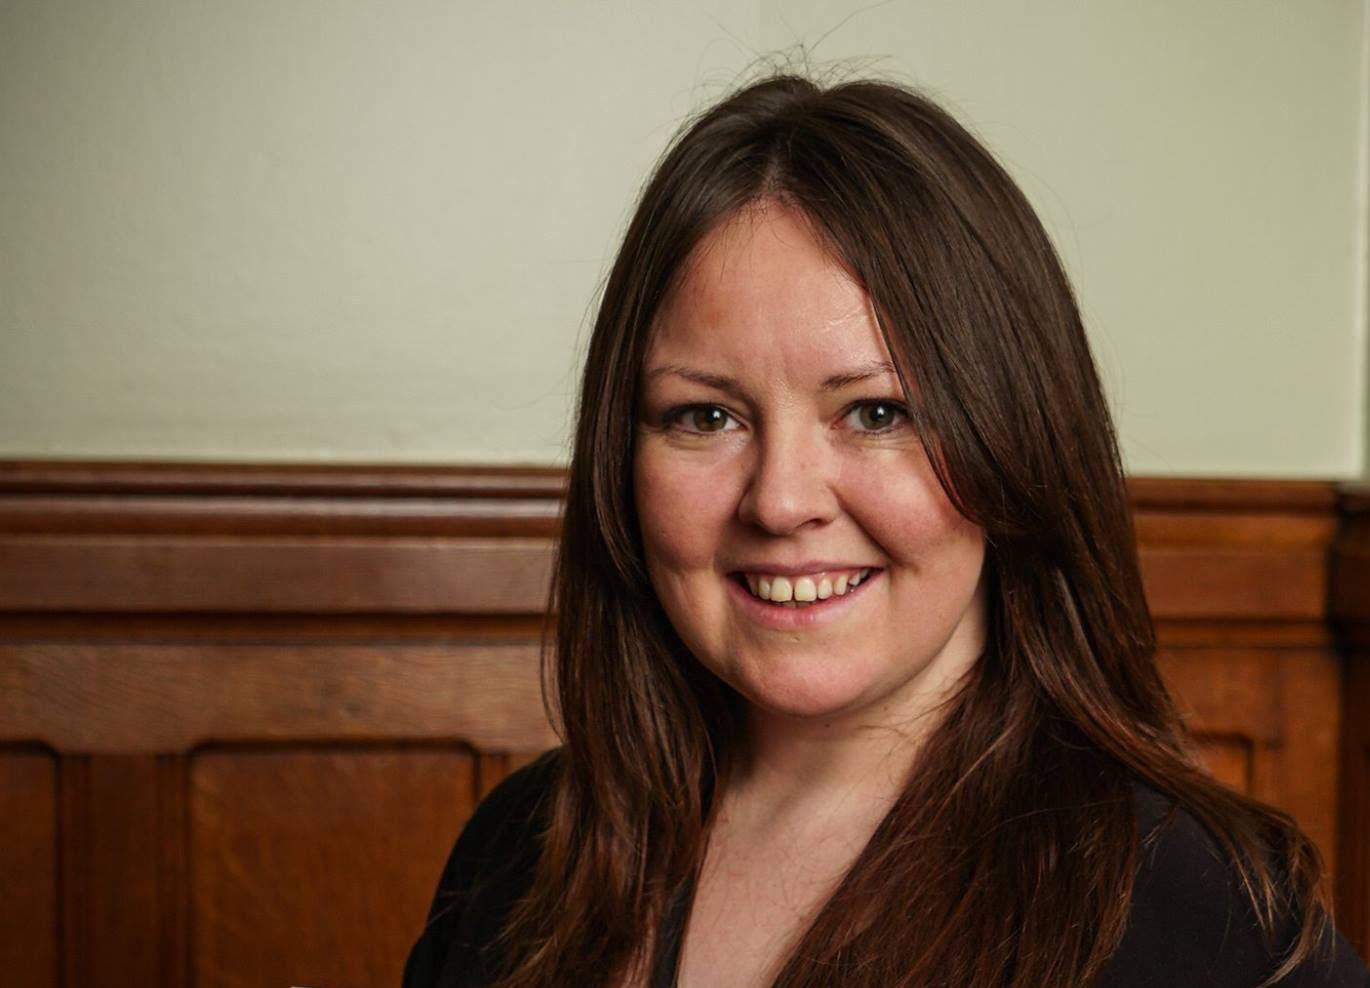 Natalie McGarry MP